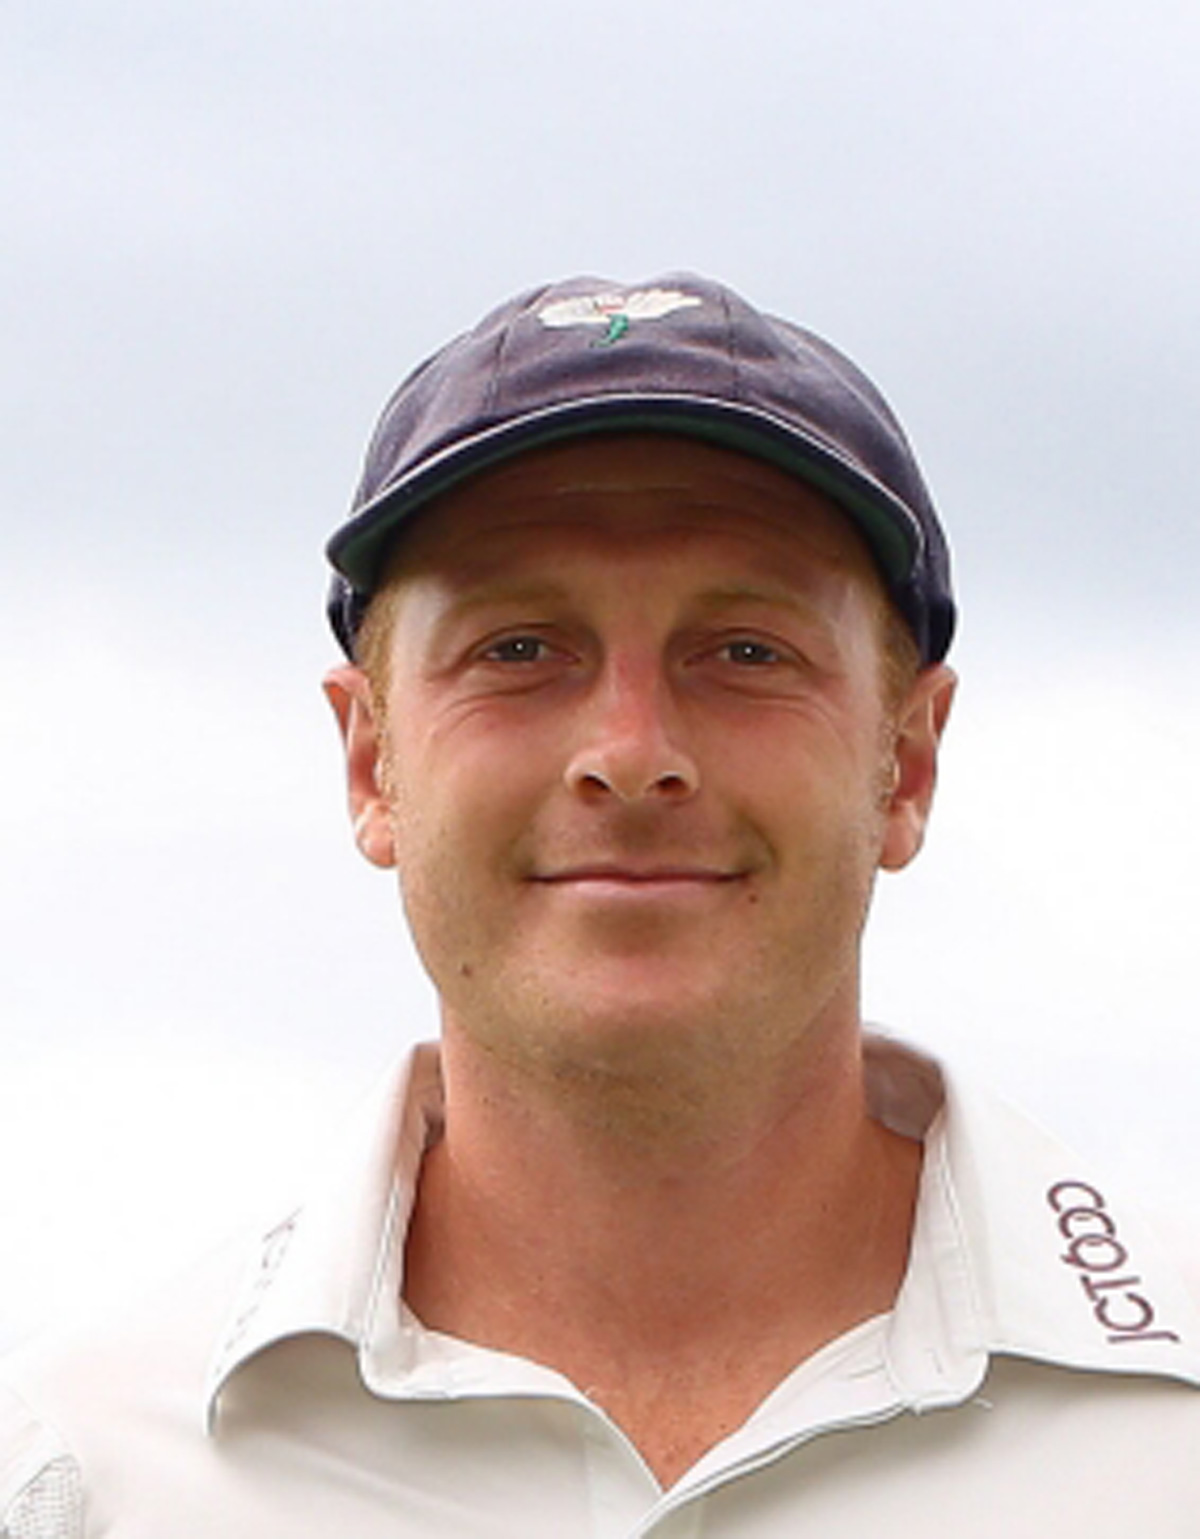 Yorkshire captain Andrew Gale